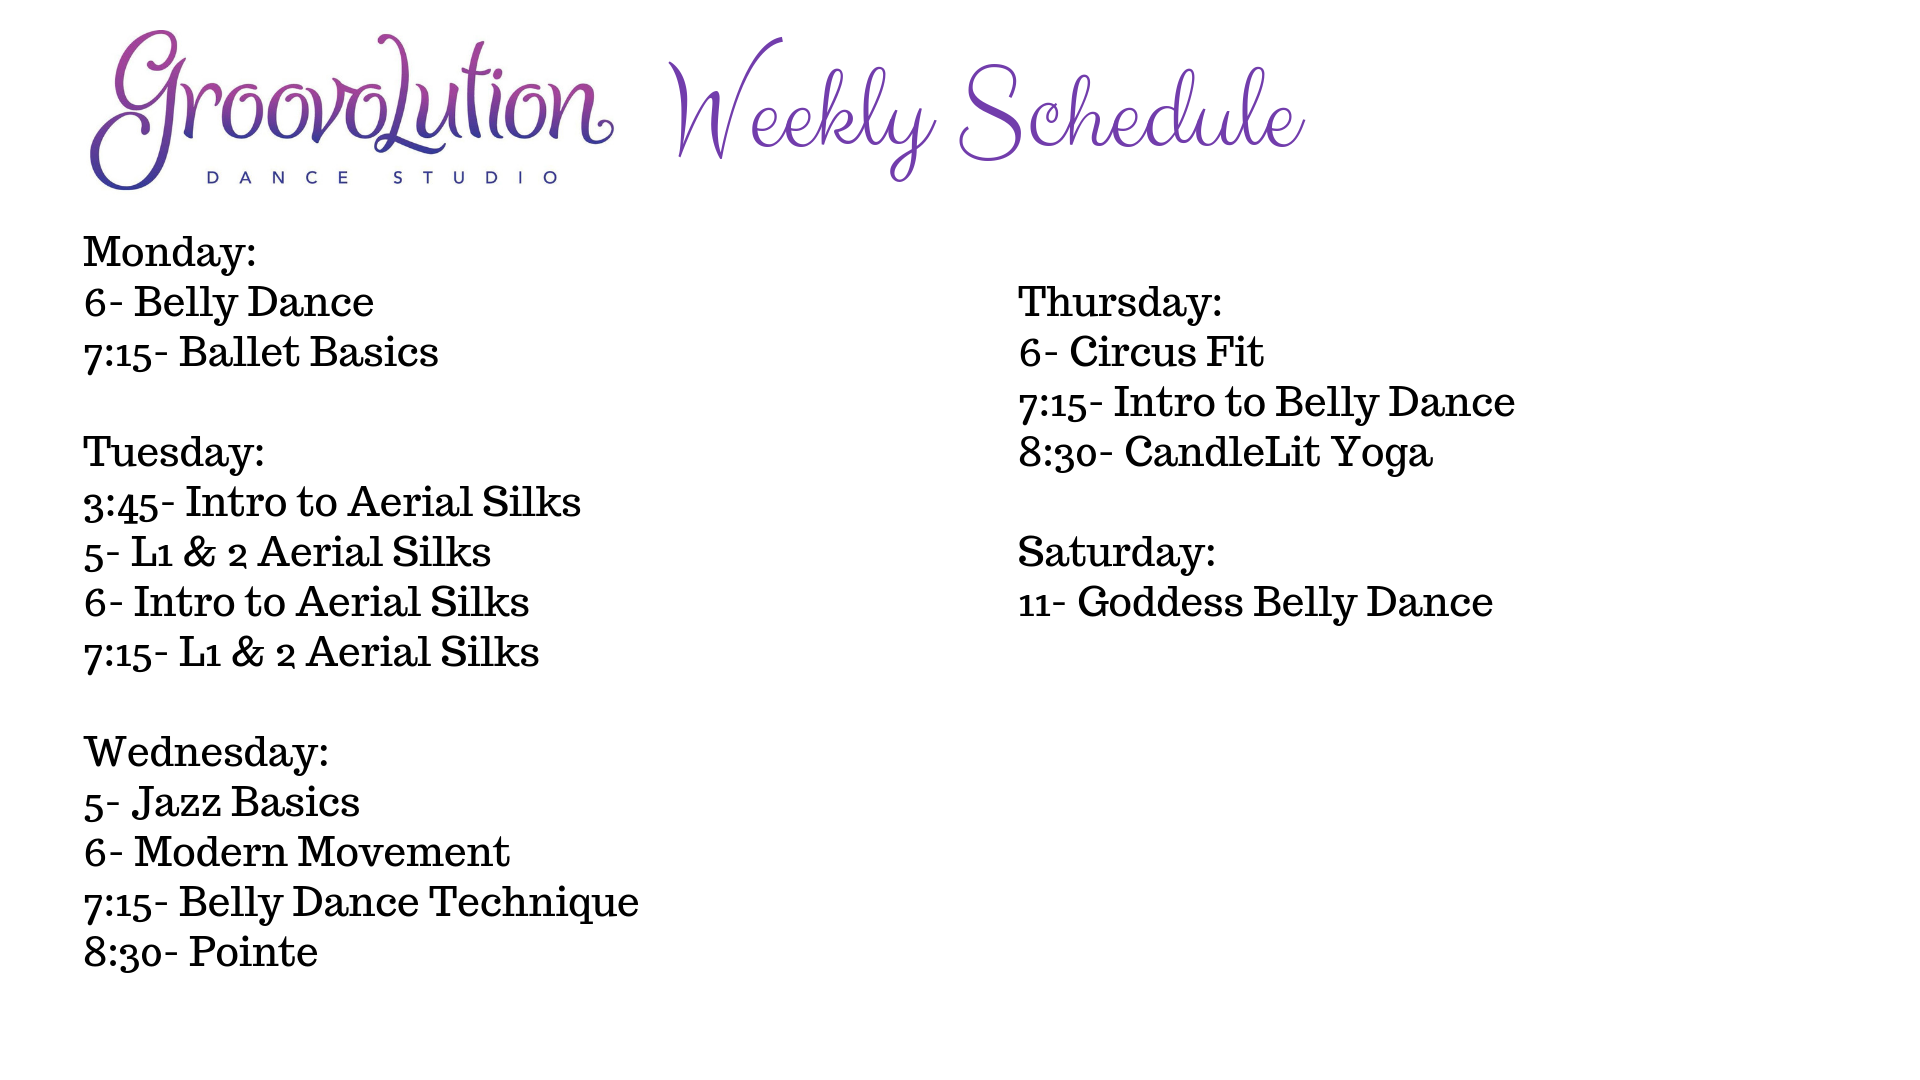 Copy of Weekly Schedule